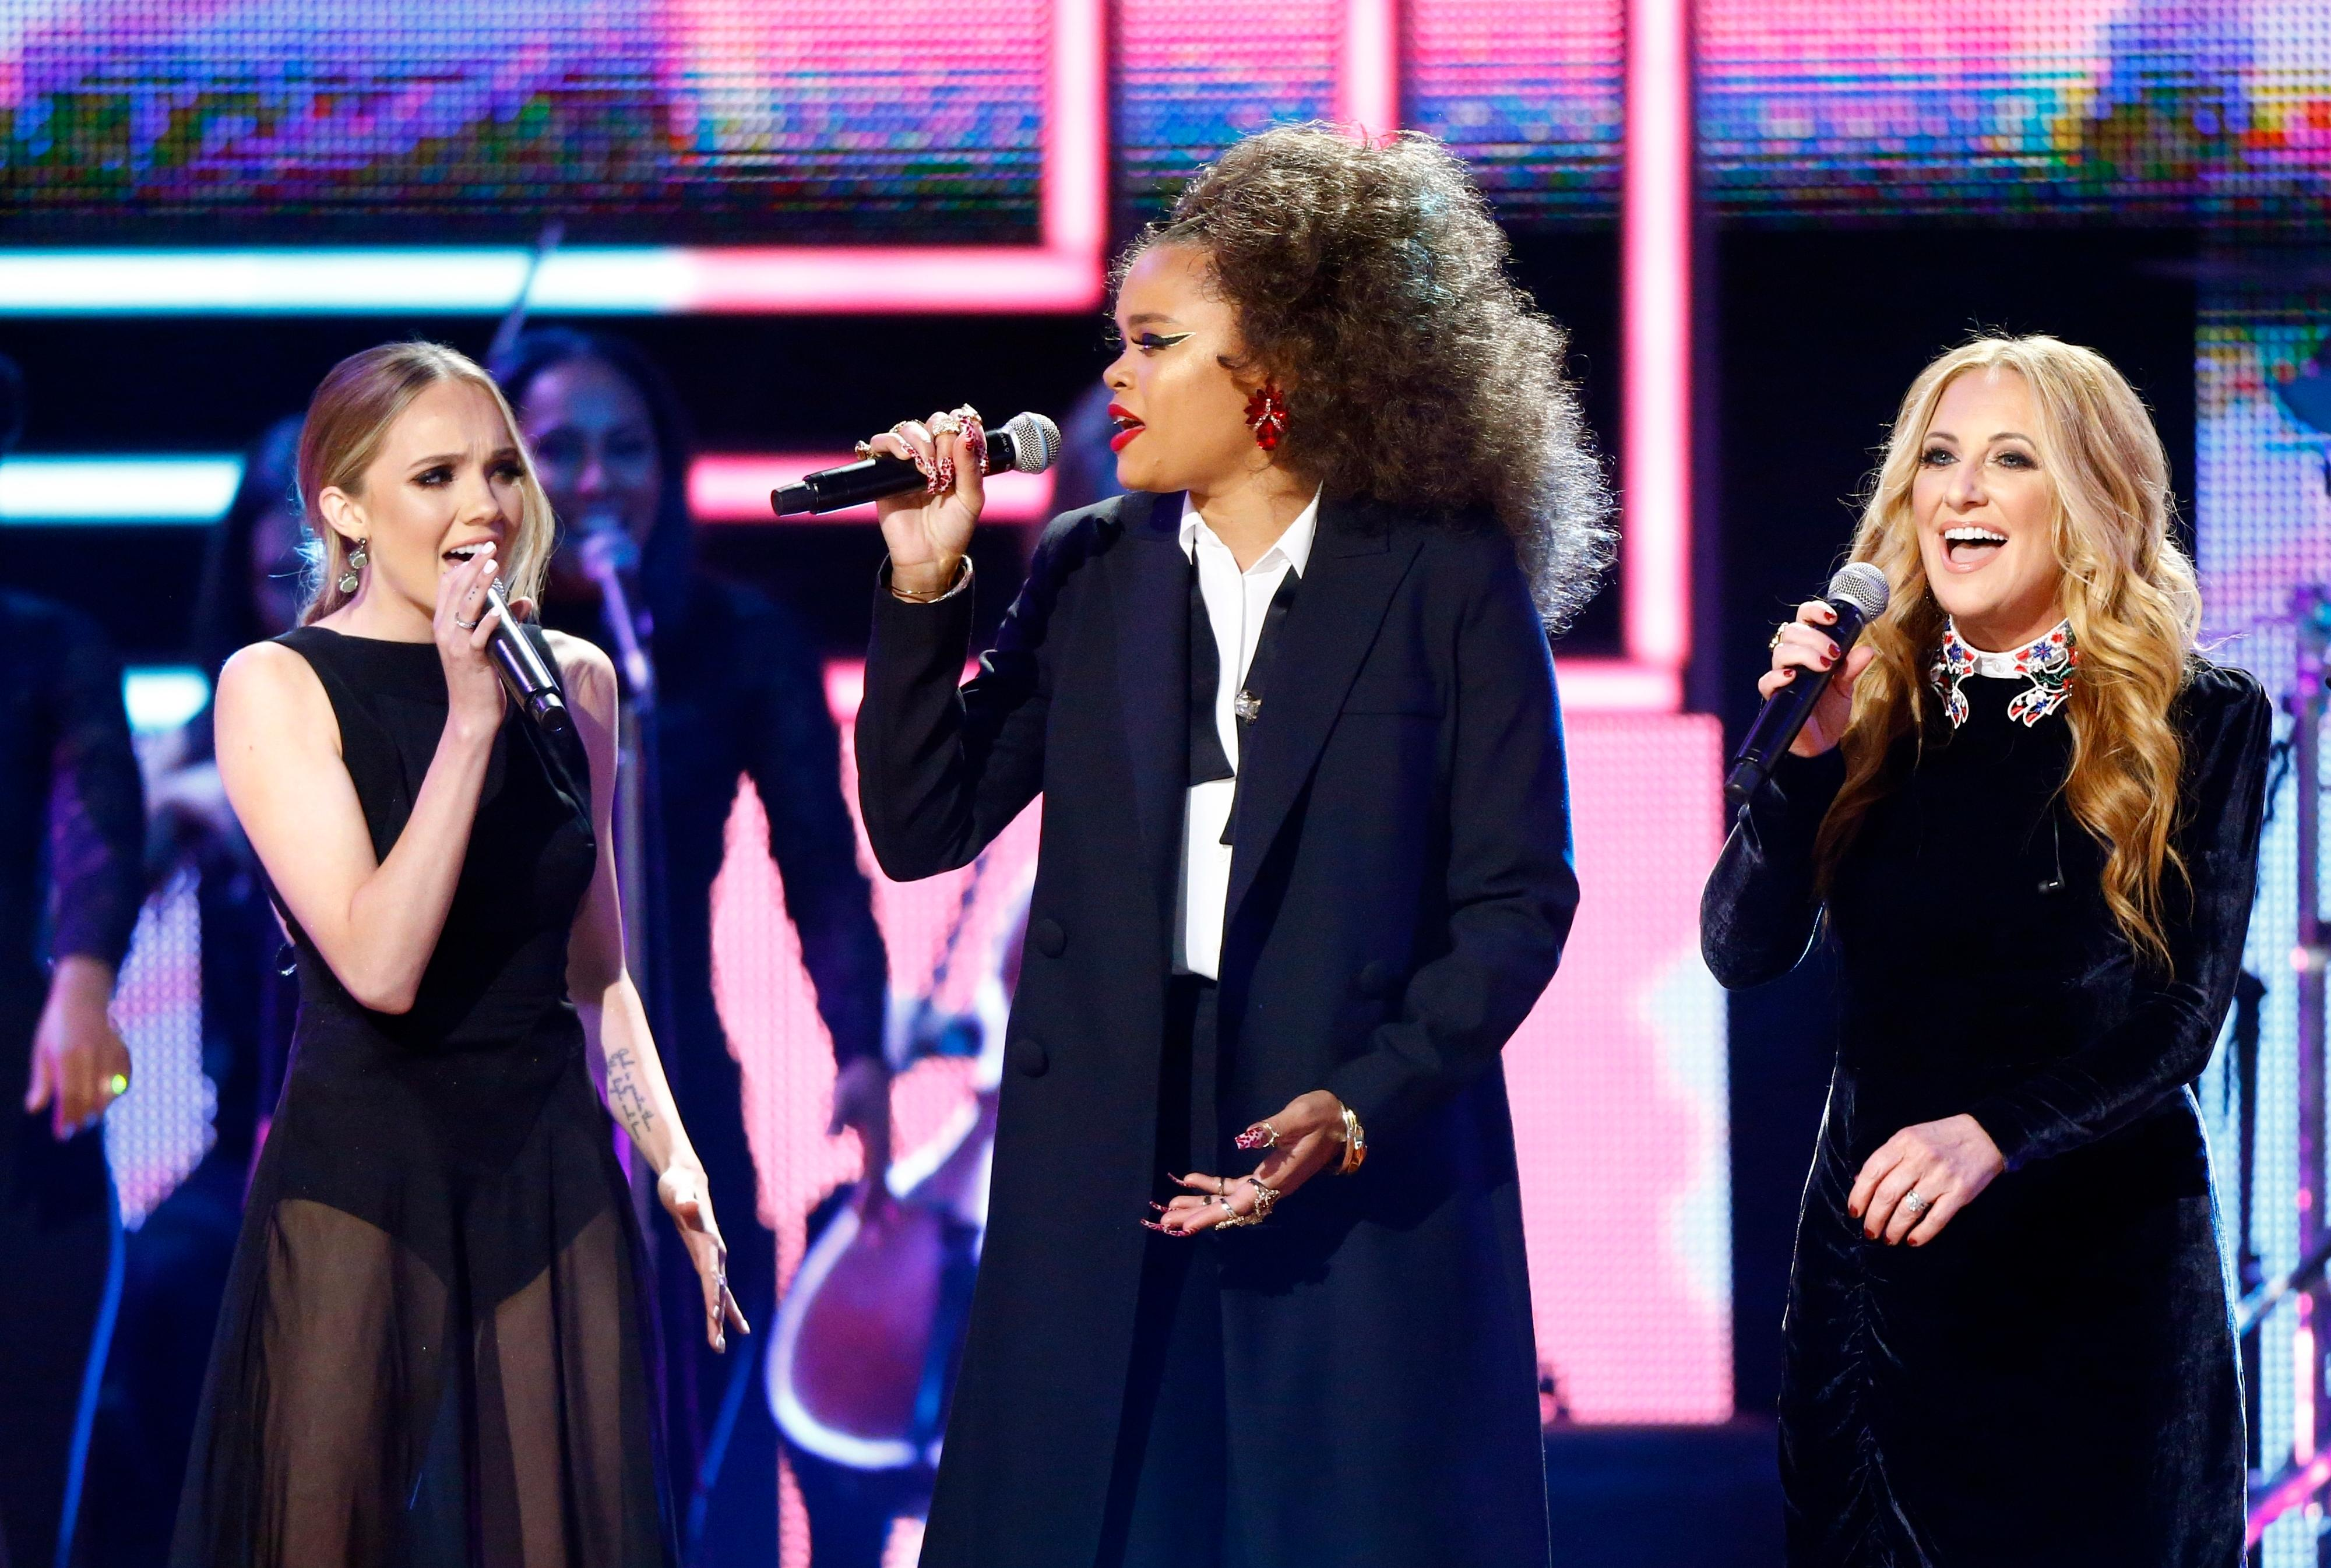 Andra Day, center, Lee Ann Womack, right and Danielle Bradbery perform at 2017 CMT Artist of the Year Awards at Nashville's Schermerhorn Symphony Center on Wednesday, Oct. 18, 2017, in Nashville, Tenn. (Photo by Wade Payne/Invision/AP)